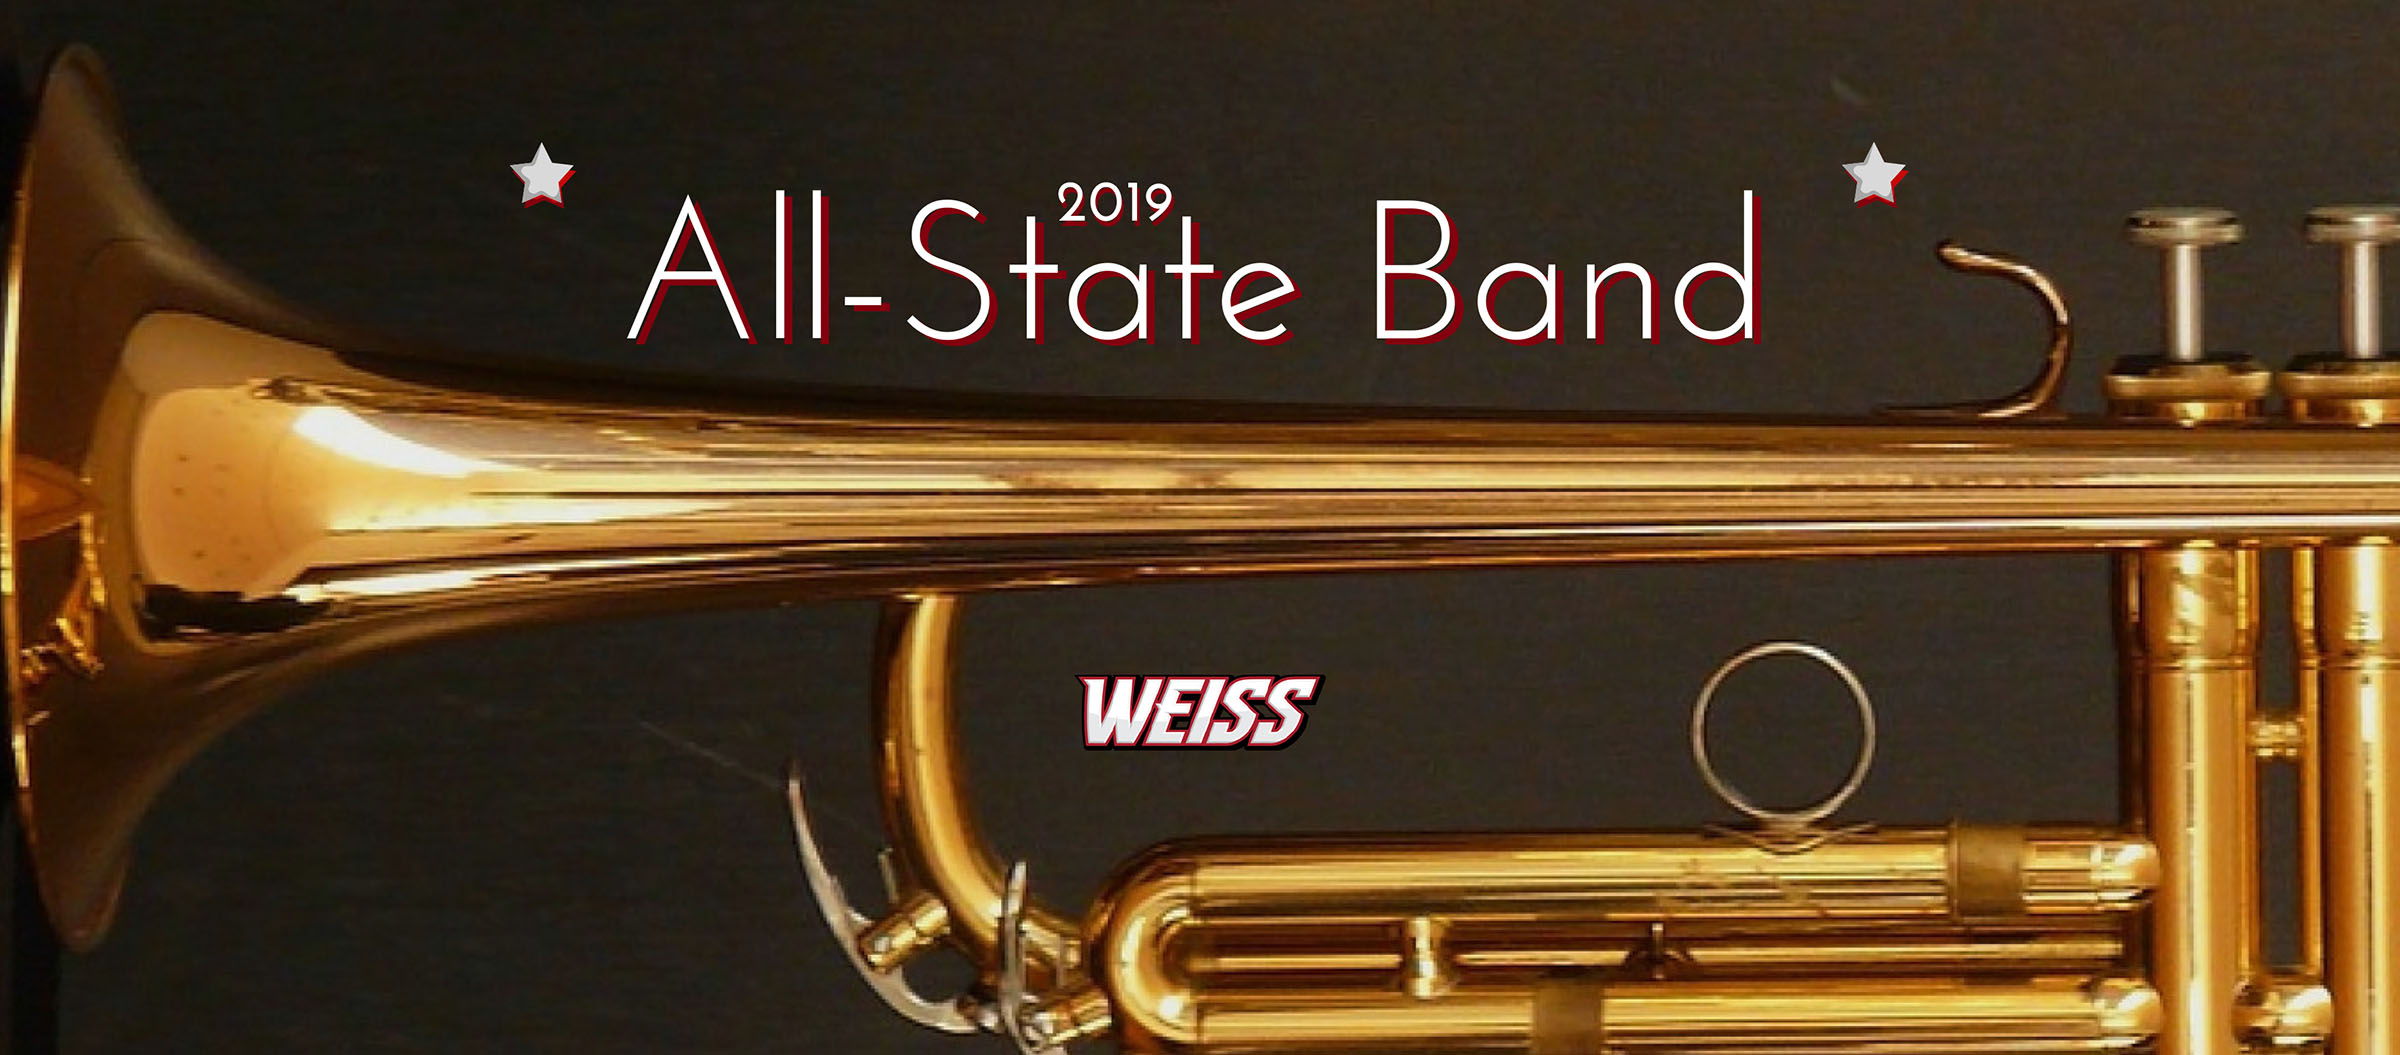 All-State Band